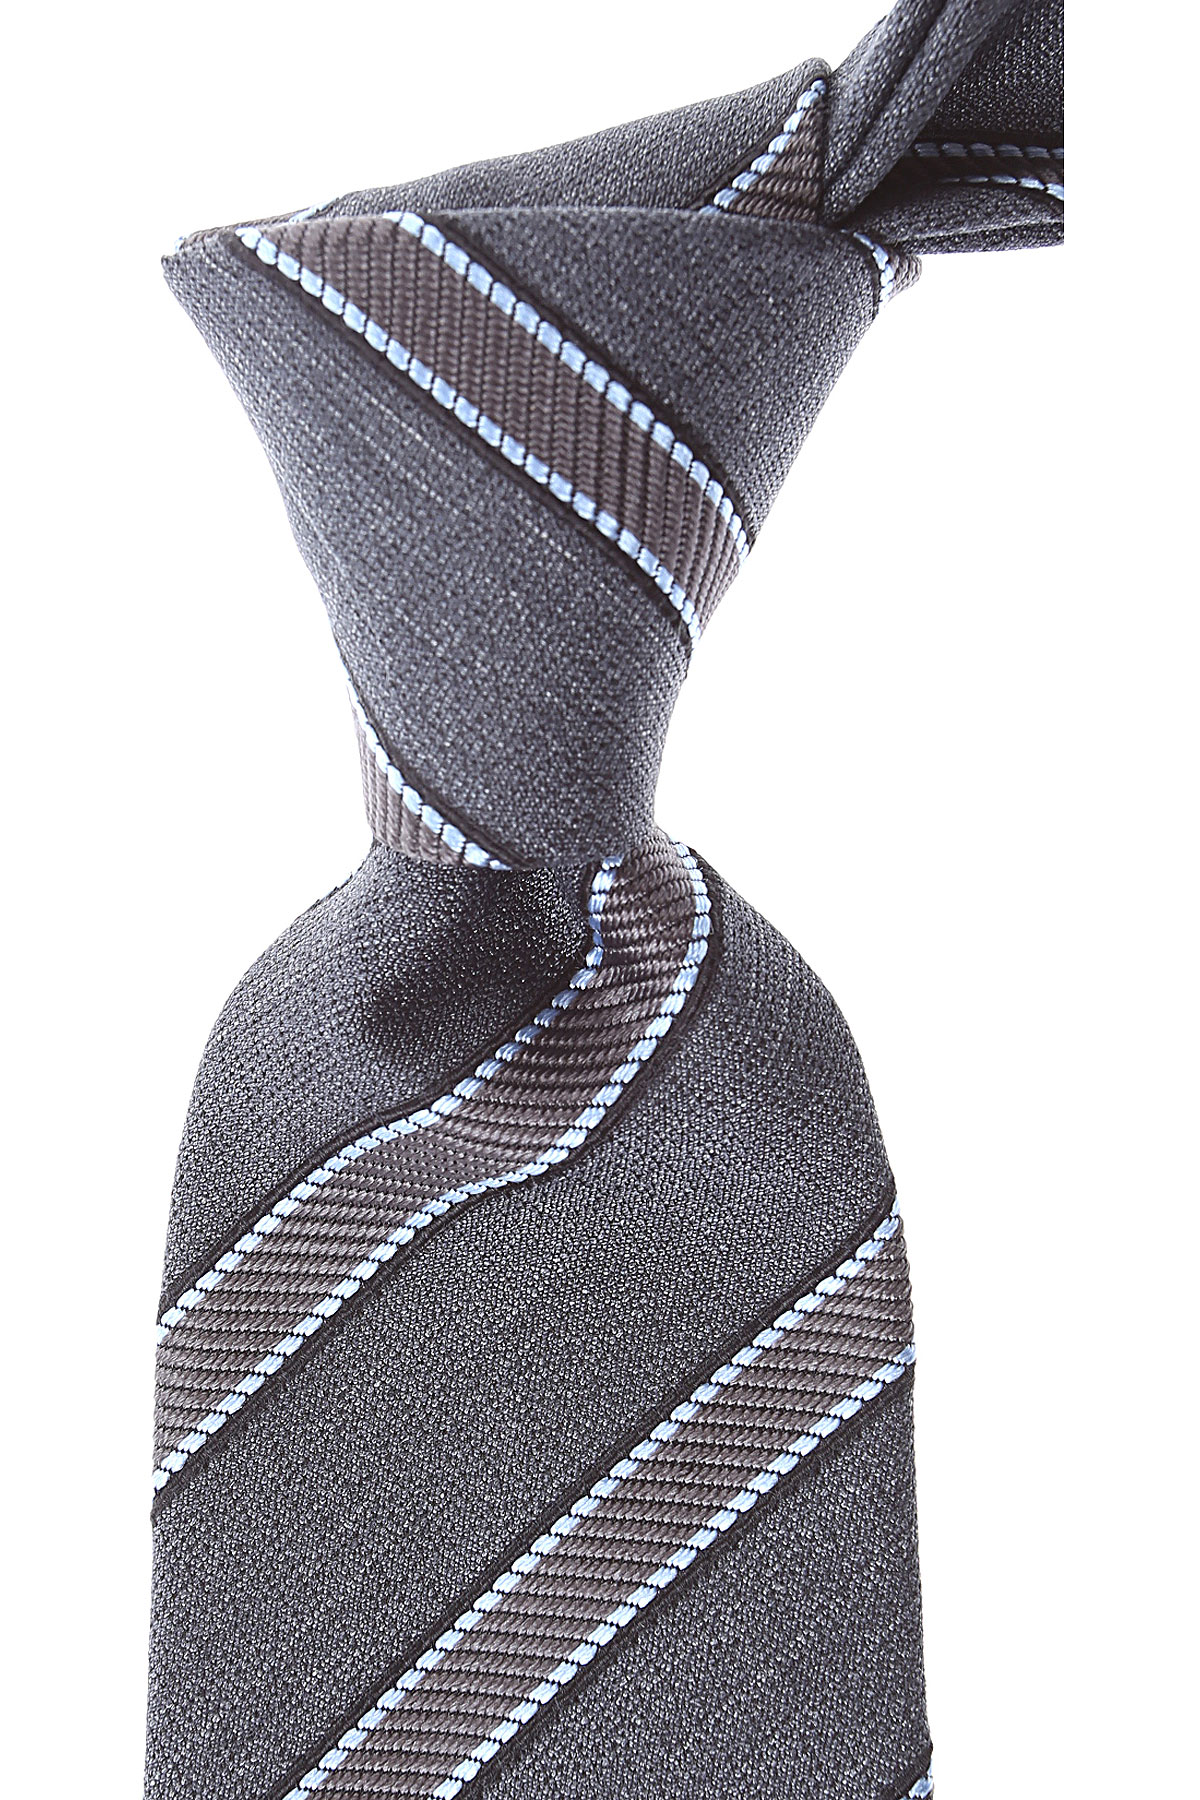 Canali Ties On Sale, Anthracite Grey Melange, Silk, 2019